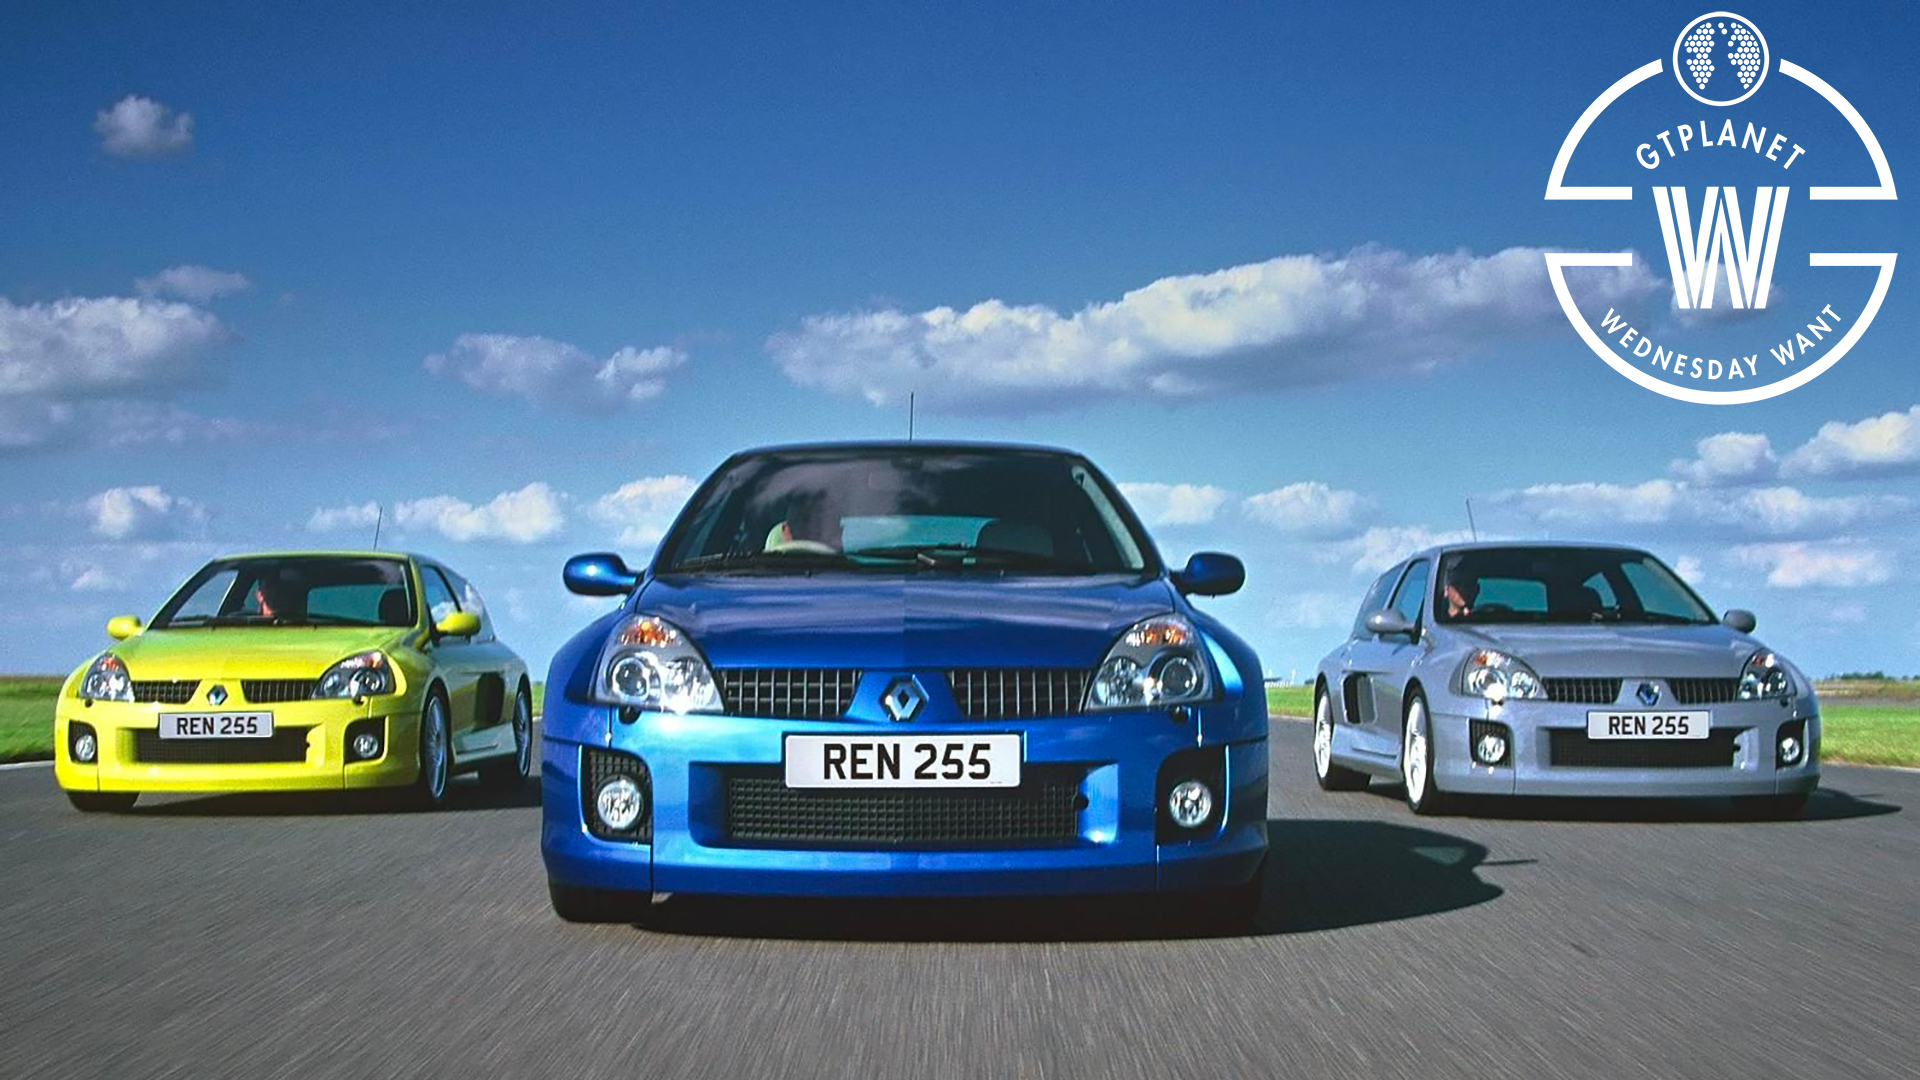 Renault Clio V6 852905 Hd Wallpaper Backgrounds Download